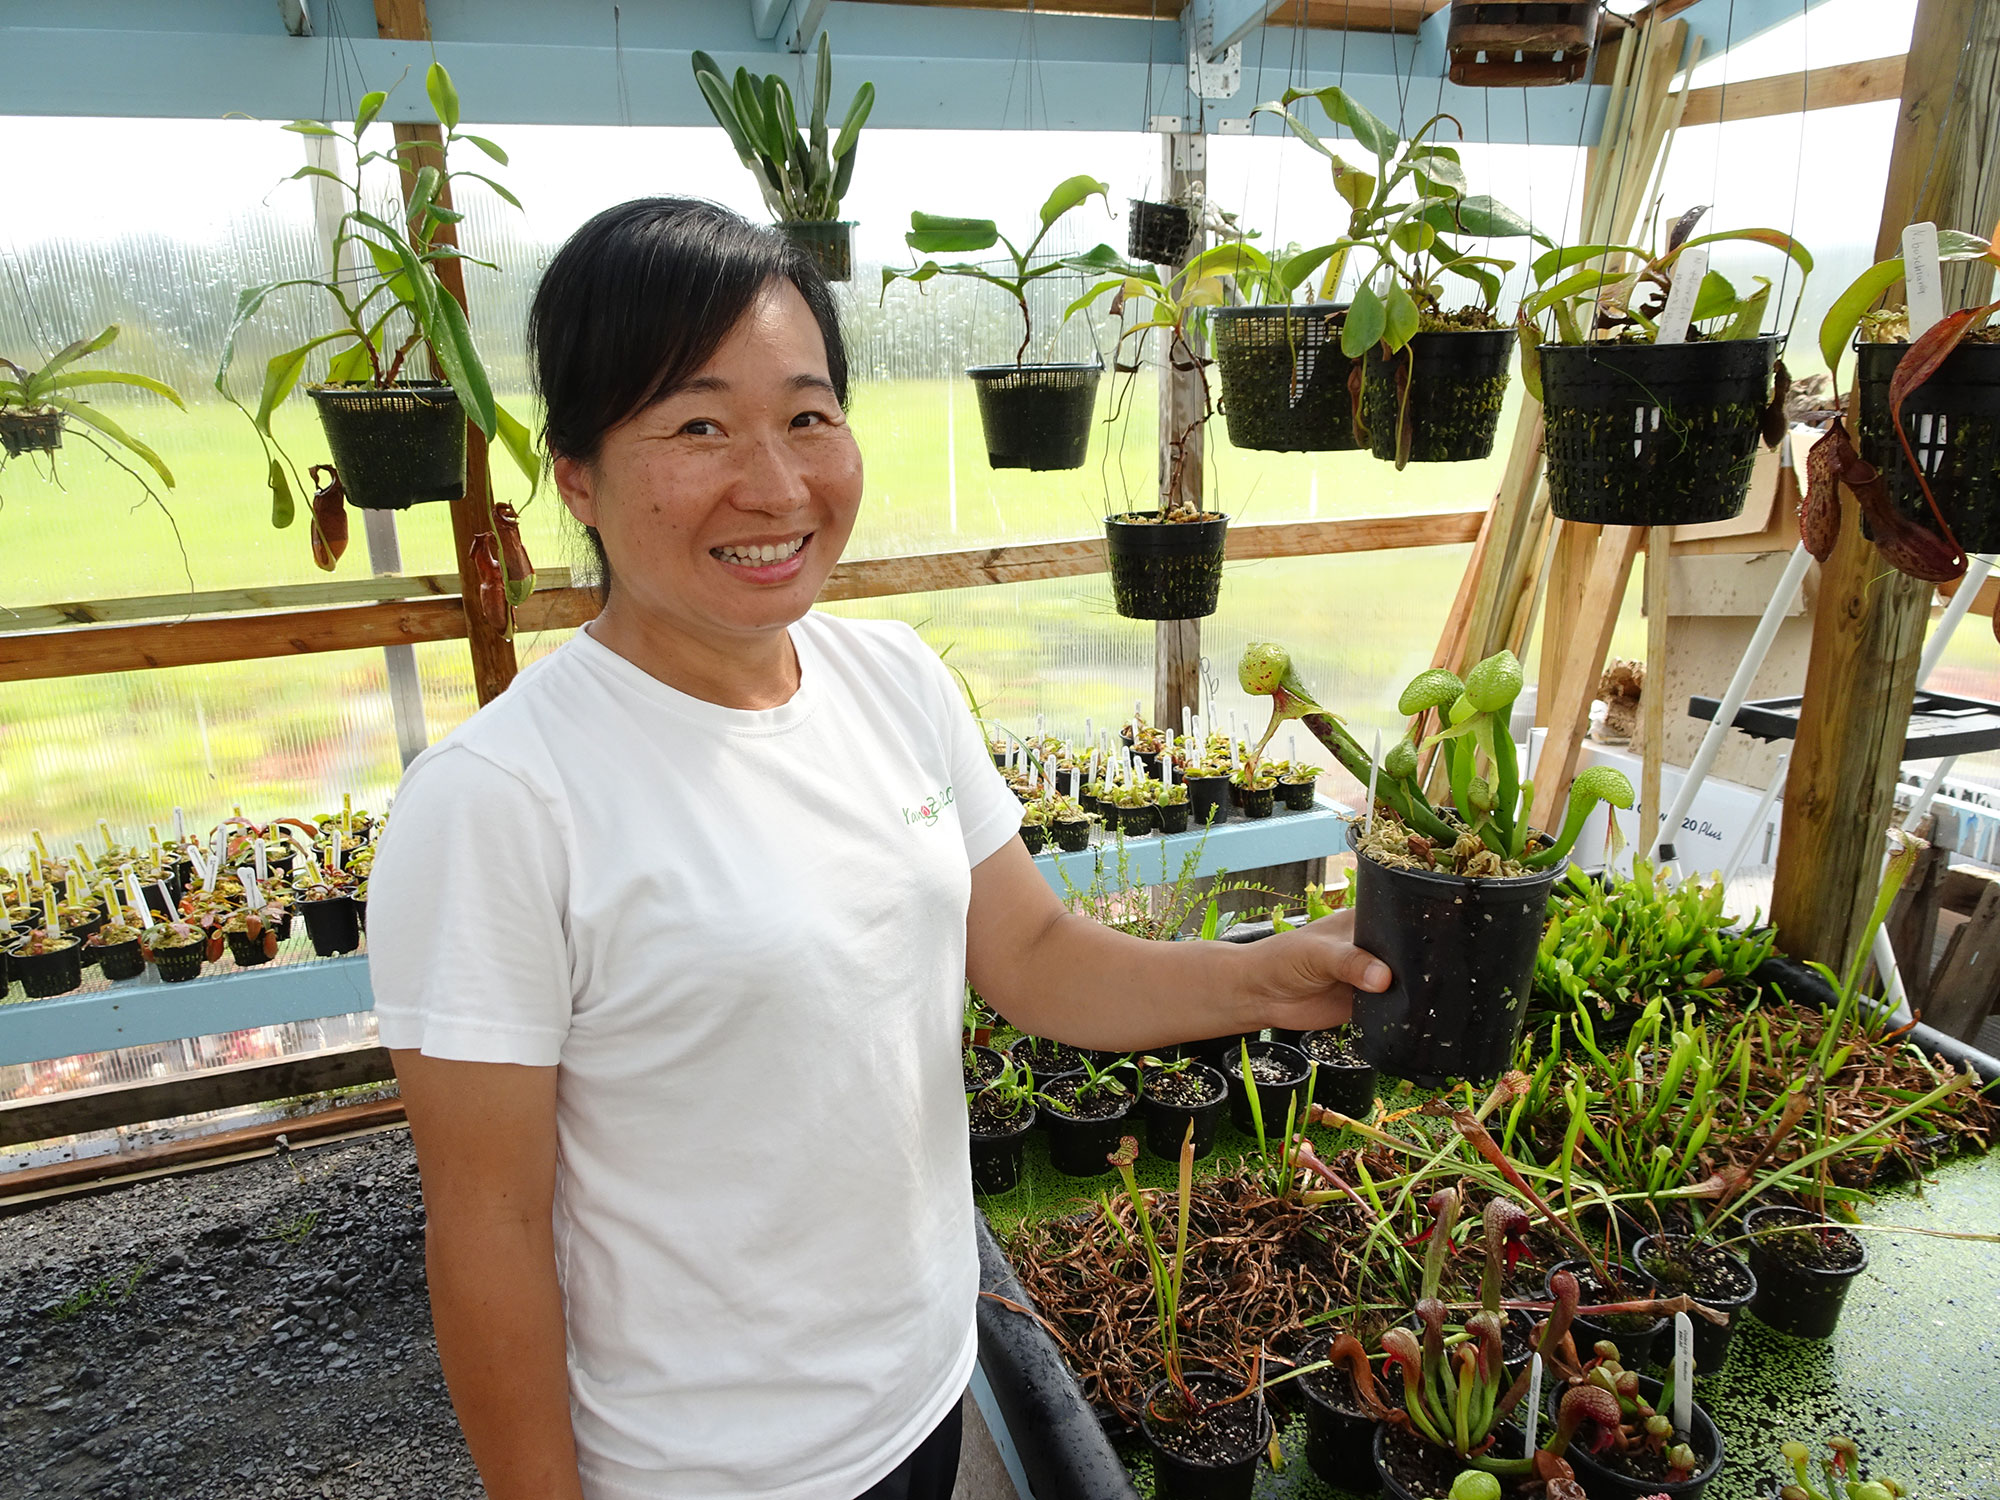 Lily and carnivorous plants